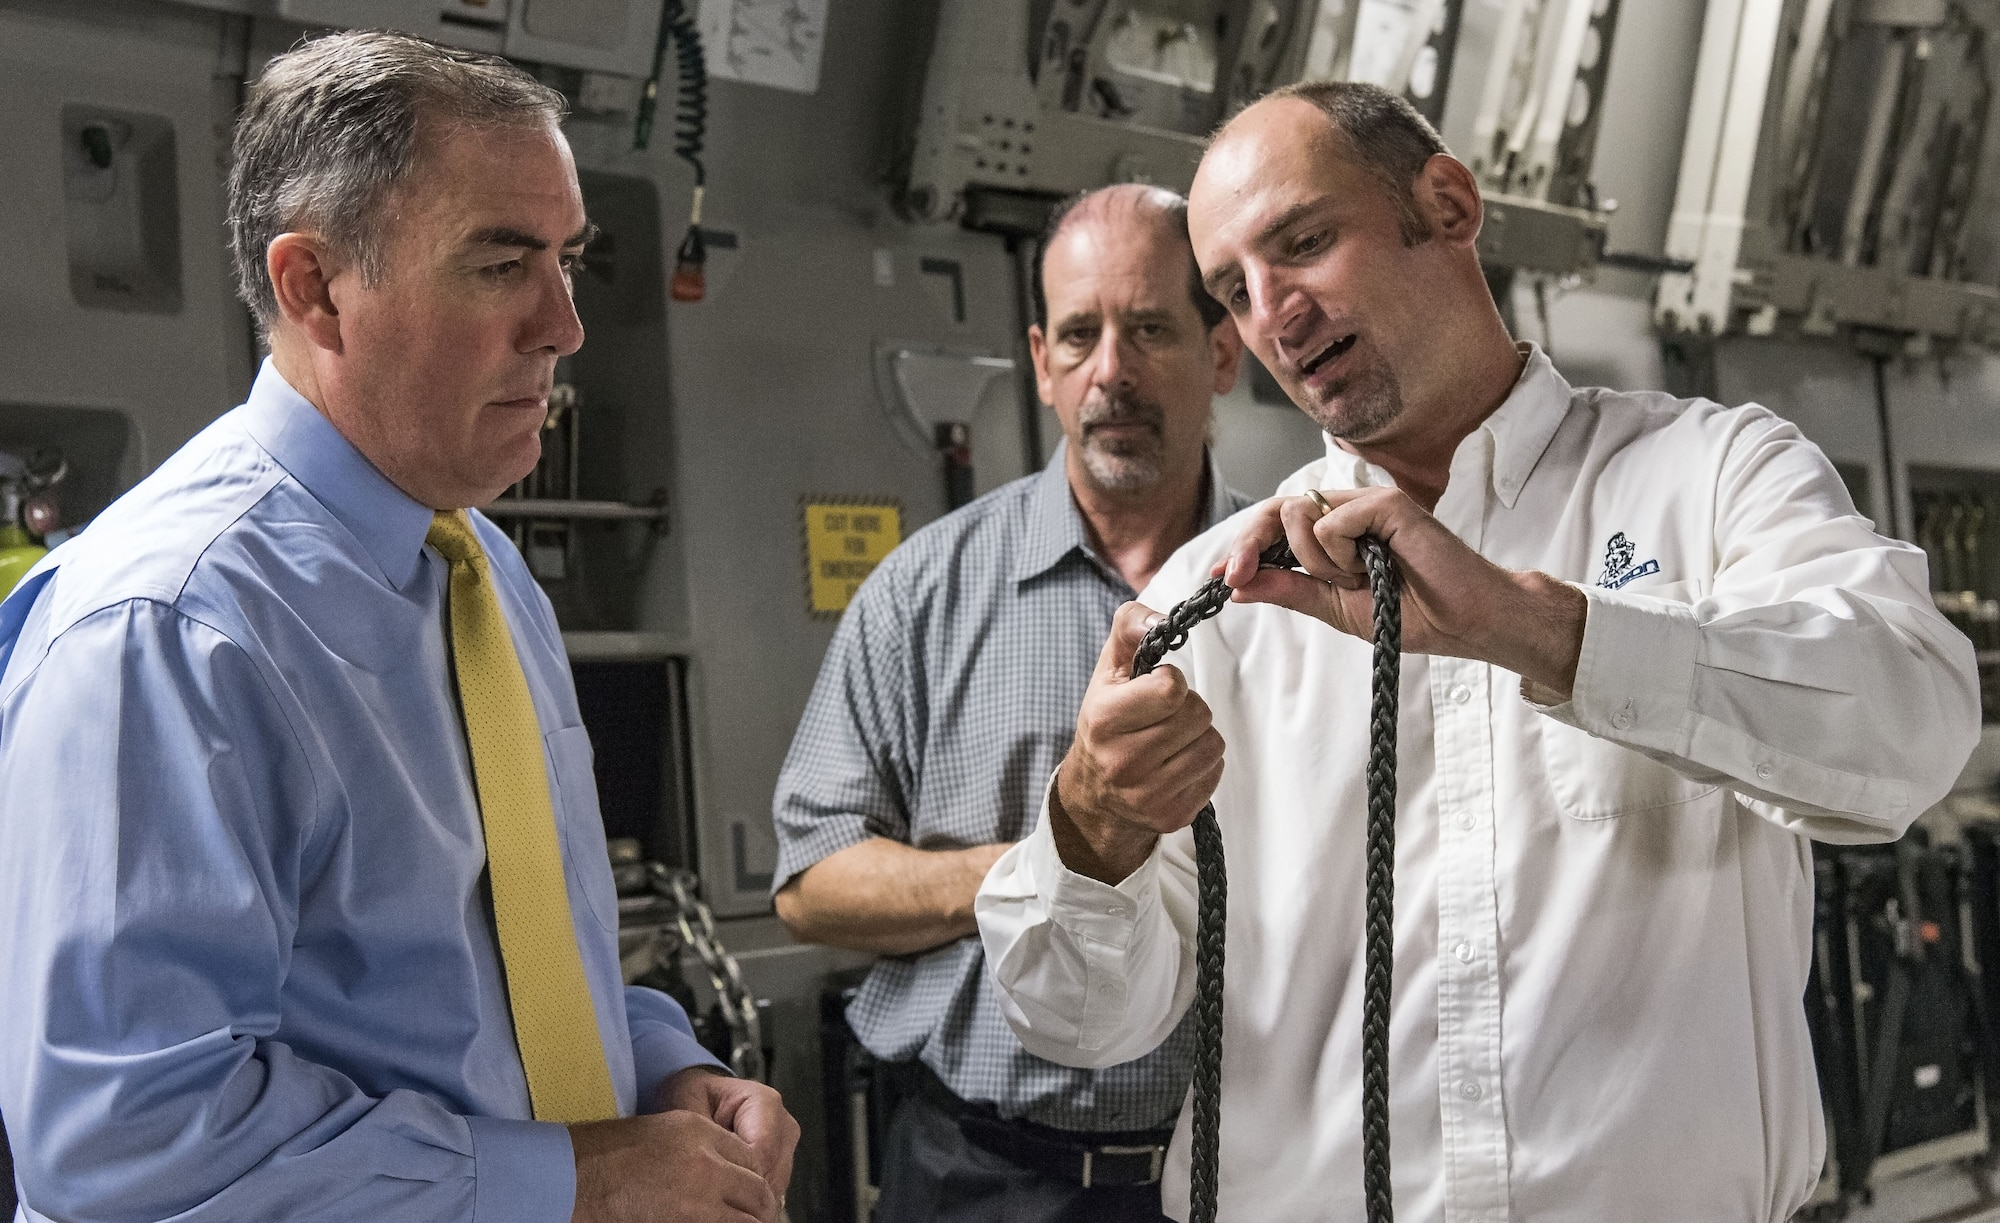 Justin Smoak, Samson Rope application engineering manager, Ferndale, Wash., right, shows Roberto Guerrero, Deputy Assistant Secretary of the Air Force for Operational Energy, Headquarters U.S. Air Force, Washington, D.C., left, and Ed Clark, AFRL aircraft programs support contractor with Concurrent Technologies Corporation, Johnstown, Pa., the weaving of the synthetic winch cable, Sept. 6, 2017, at Dover Air Force Base, Del. The proposed 280-foot synthetic winch cable weighs 14 pounds and is 83 percent lighter than the current 80 pound steel wire cable. (U.S. Air Force photo by Roland Balik)